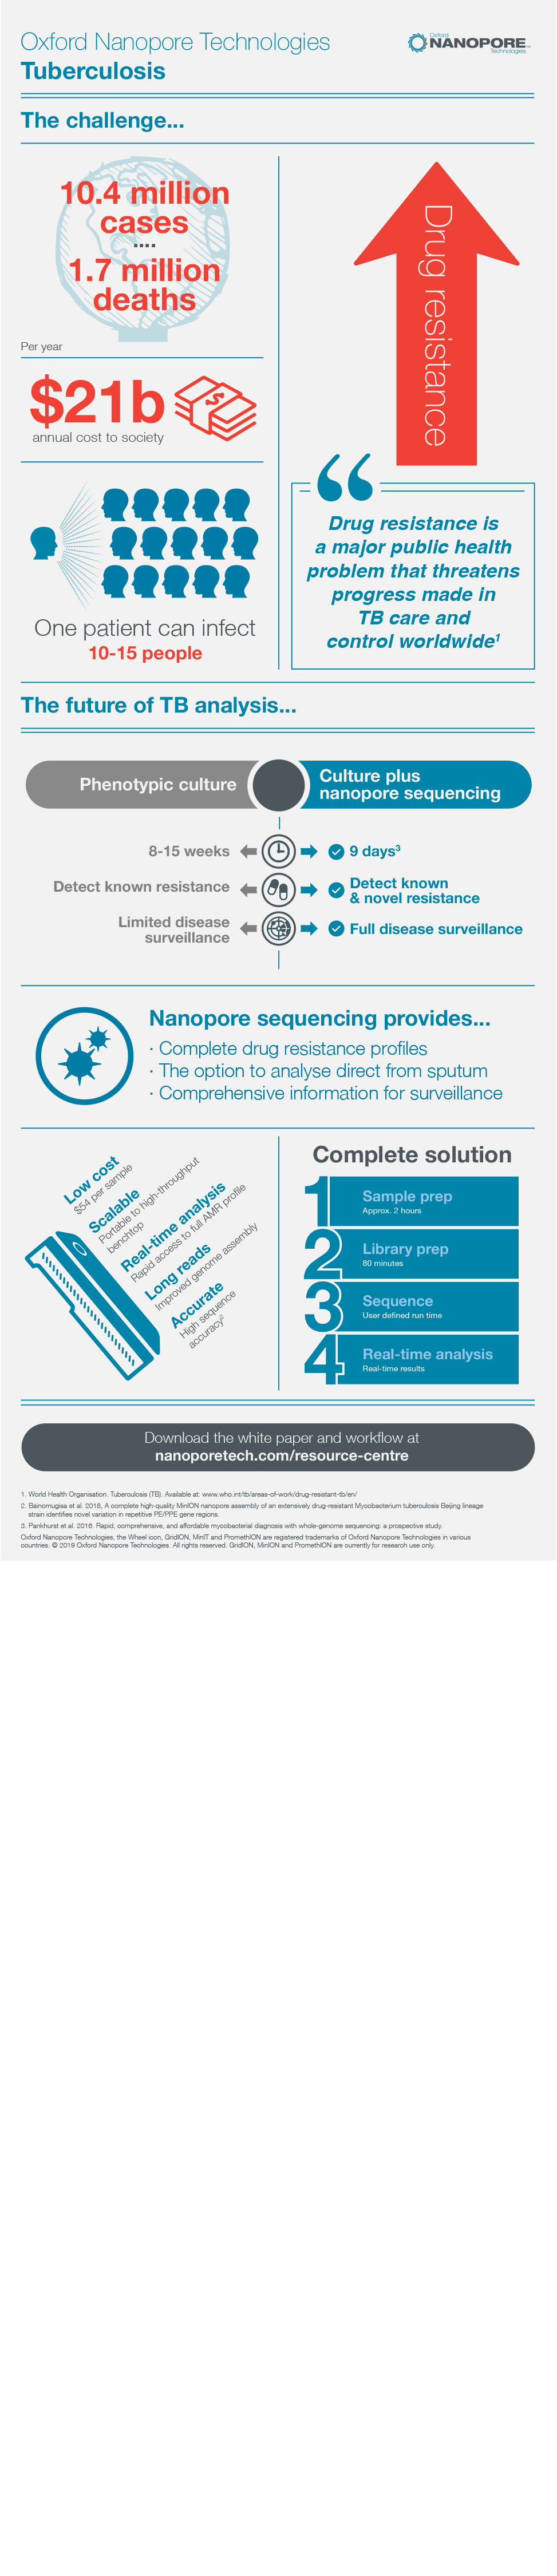 Nanopore Technology infographic